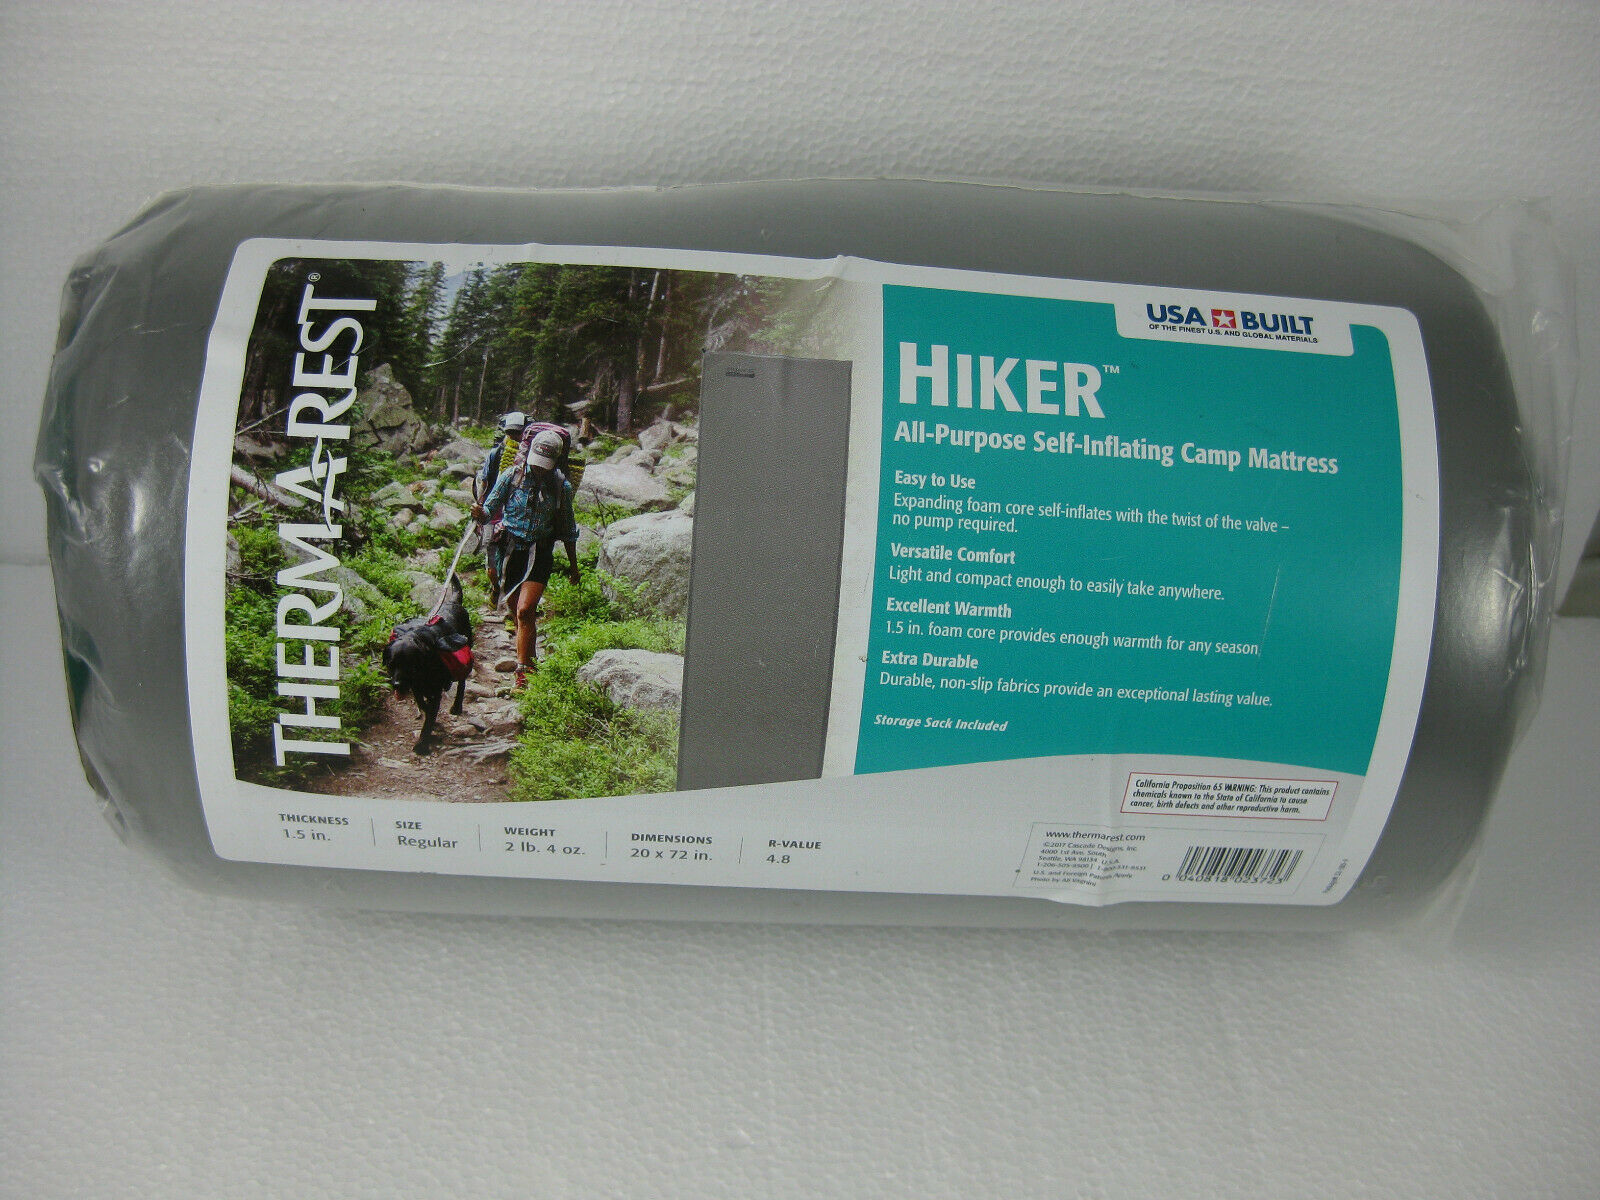 Therma-rest  hiker all purpose self-inflating camp mattress grey NEW  limited edition